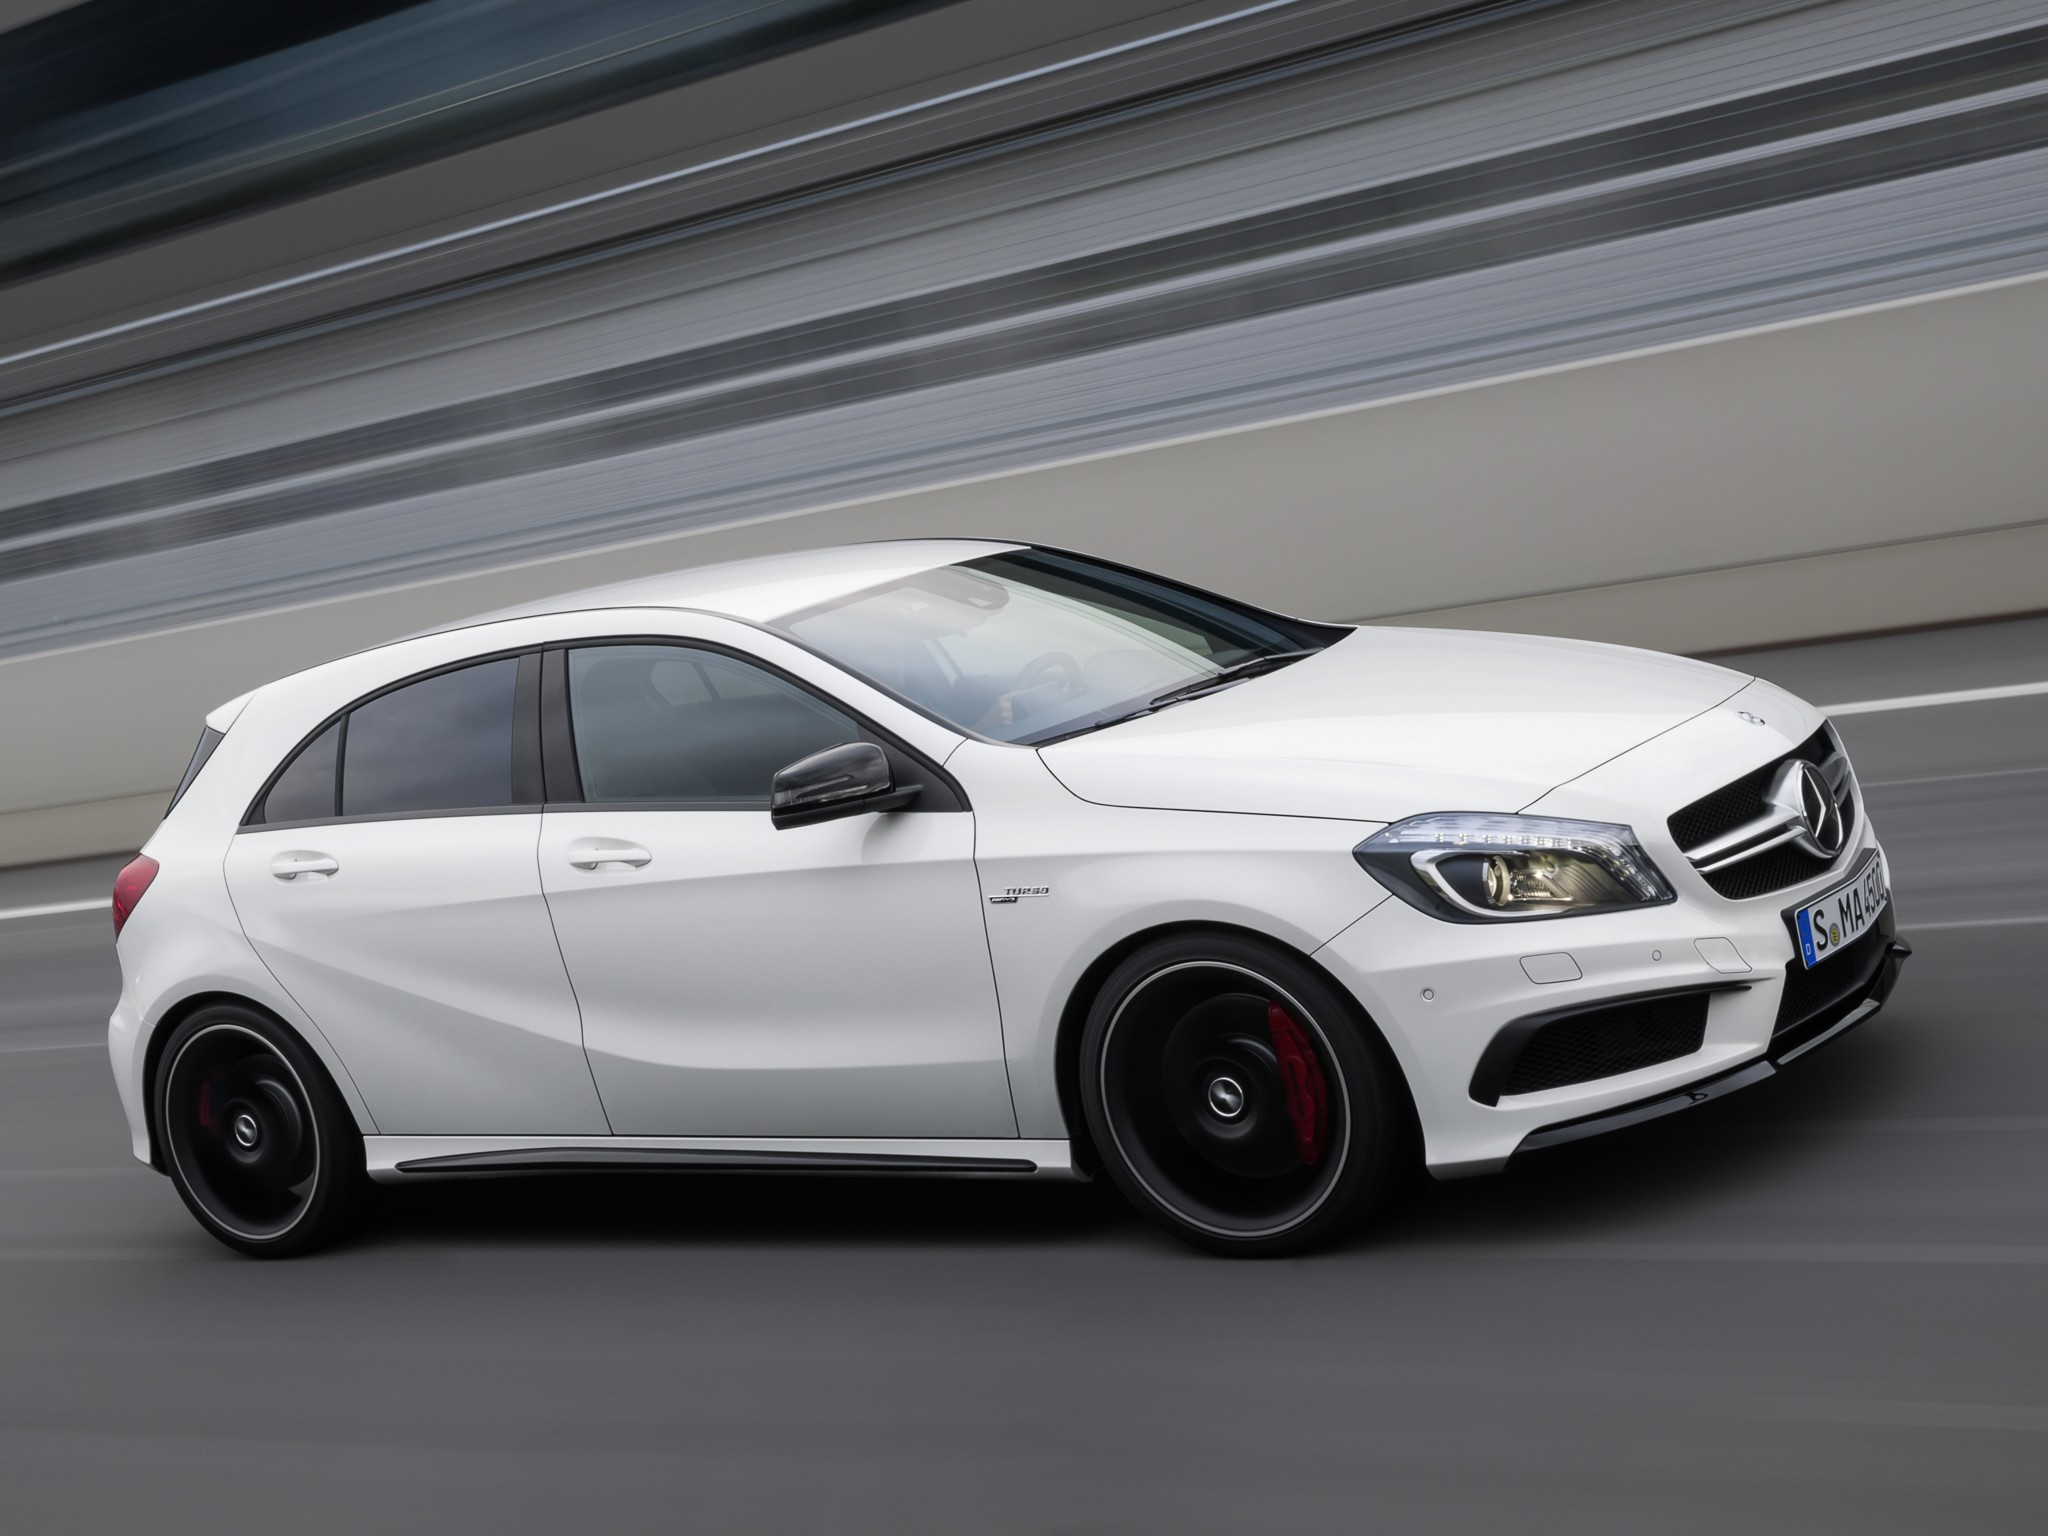 Mercedes benz a45 amg 2013 2014 2015 autoevolution for Mercedes benz a45 amg